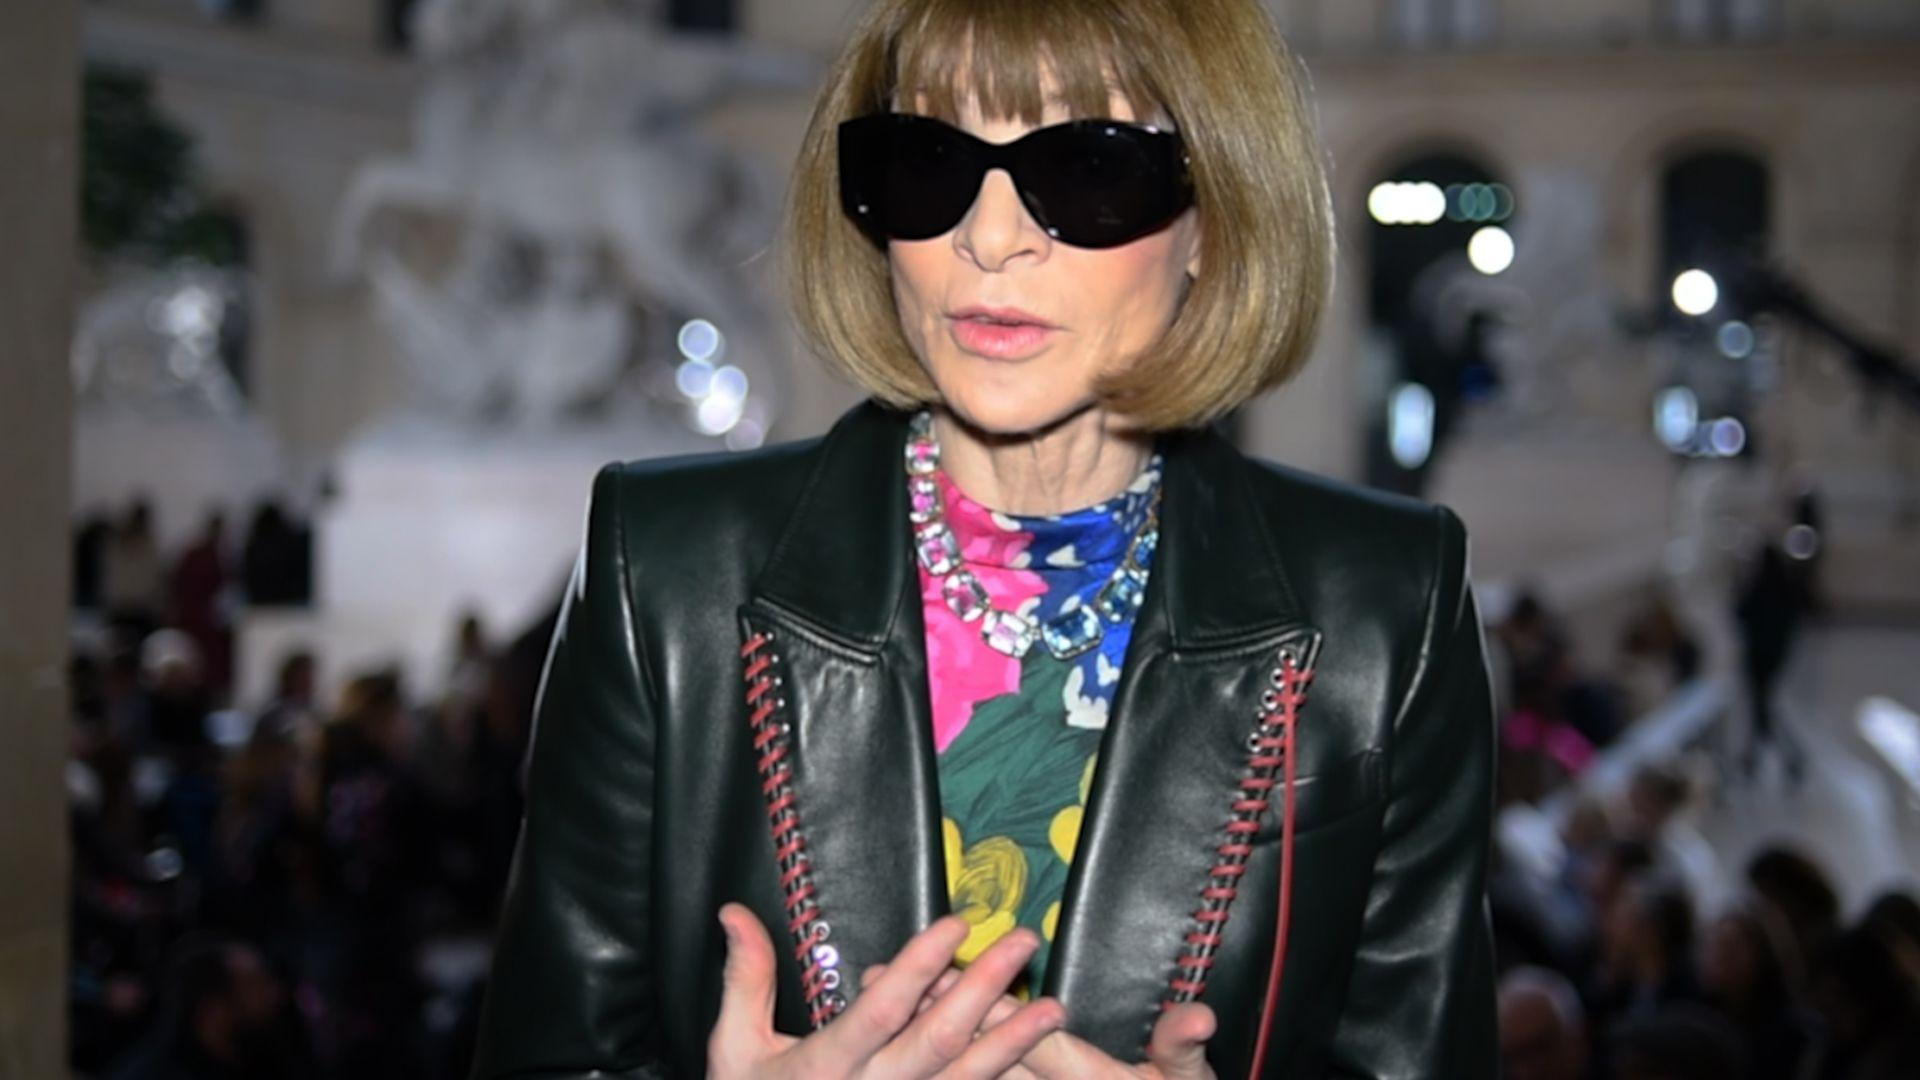 Fashion Week's Hottest New Models Were Older Women | HuffPost Life